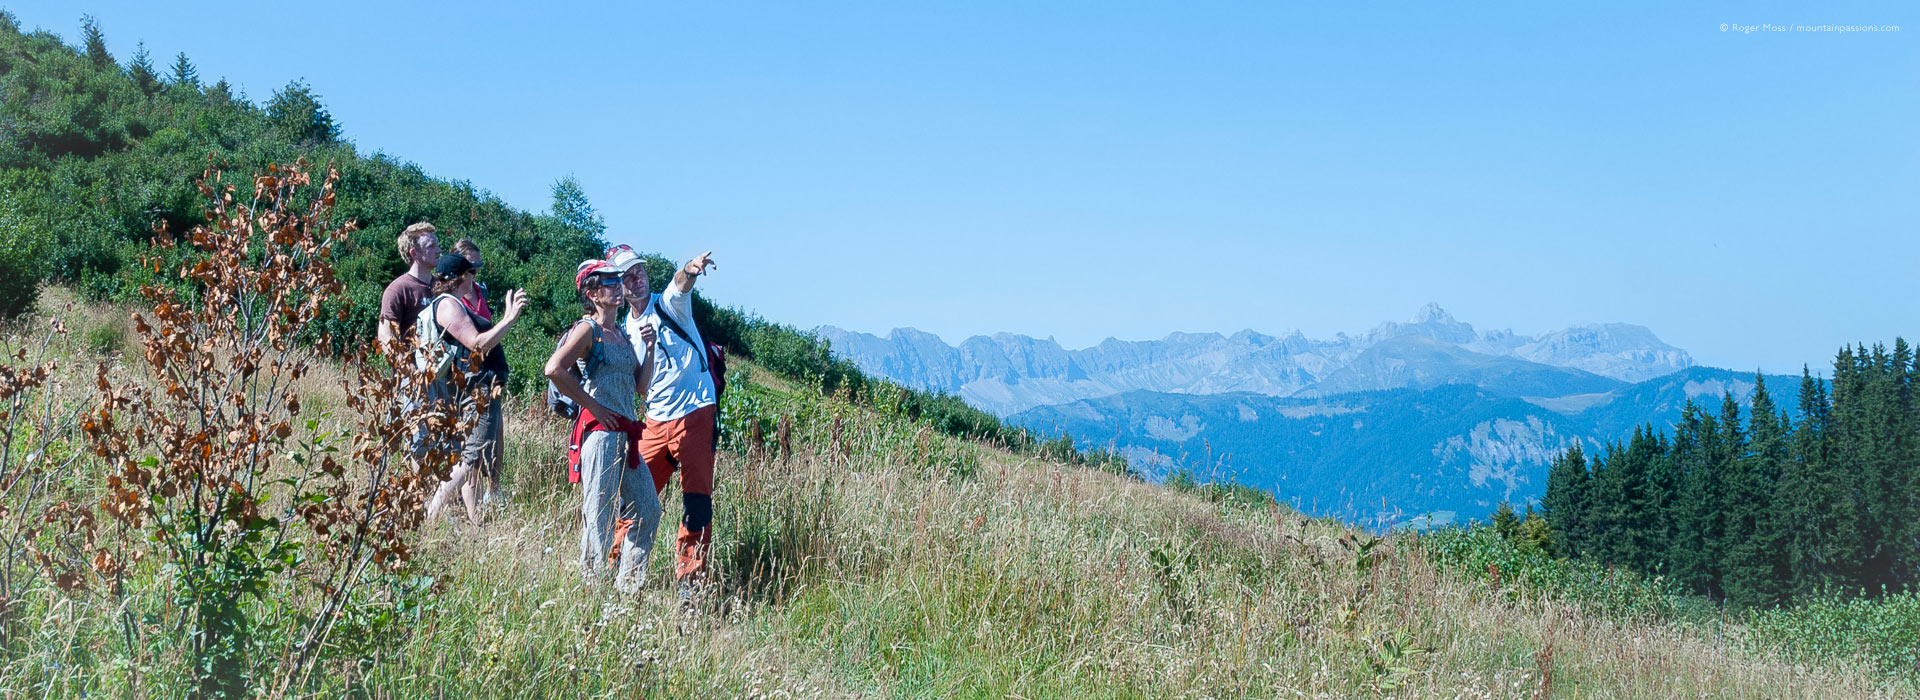 Group of walkers with tour guide Mark Tennent on mountainside in summer